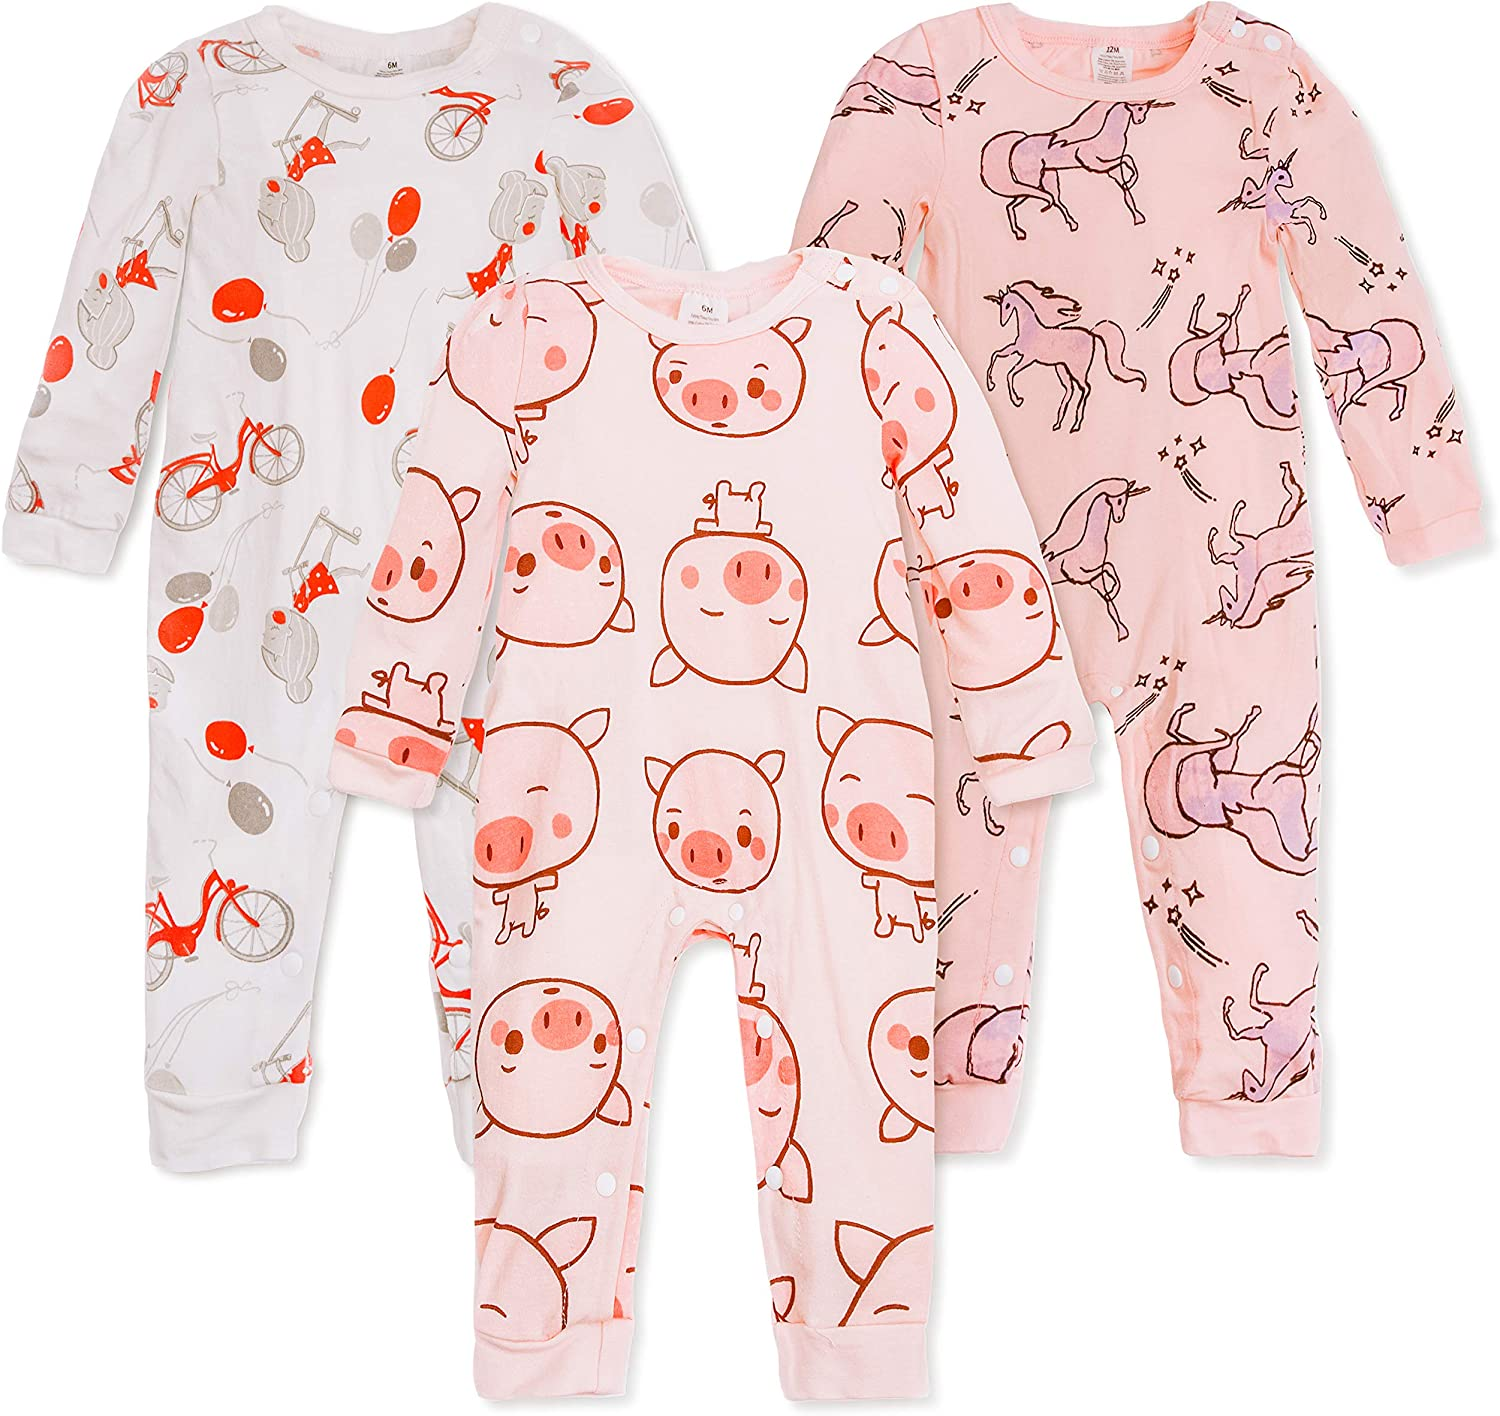 Baby Girl Dresses Footless Pajamas Baby Boy Baby Jumpsuit Baby Custumes Size 6m to 24m